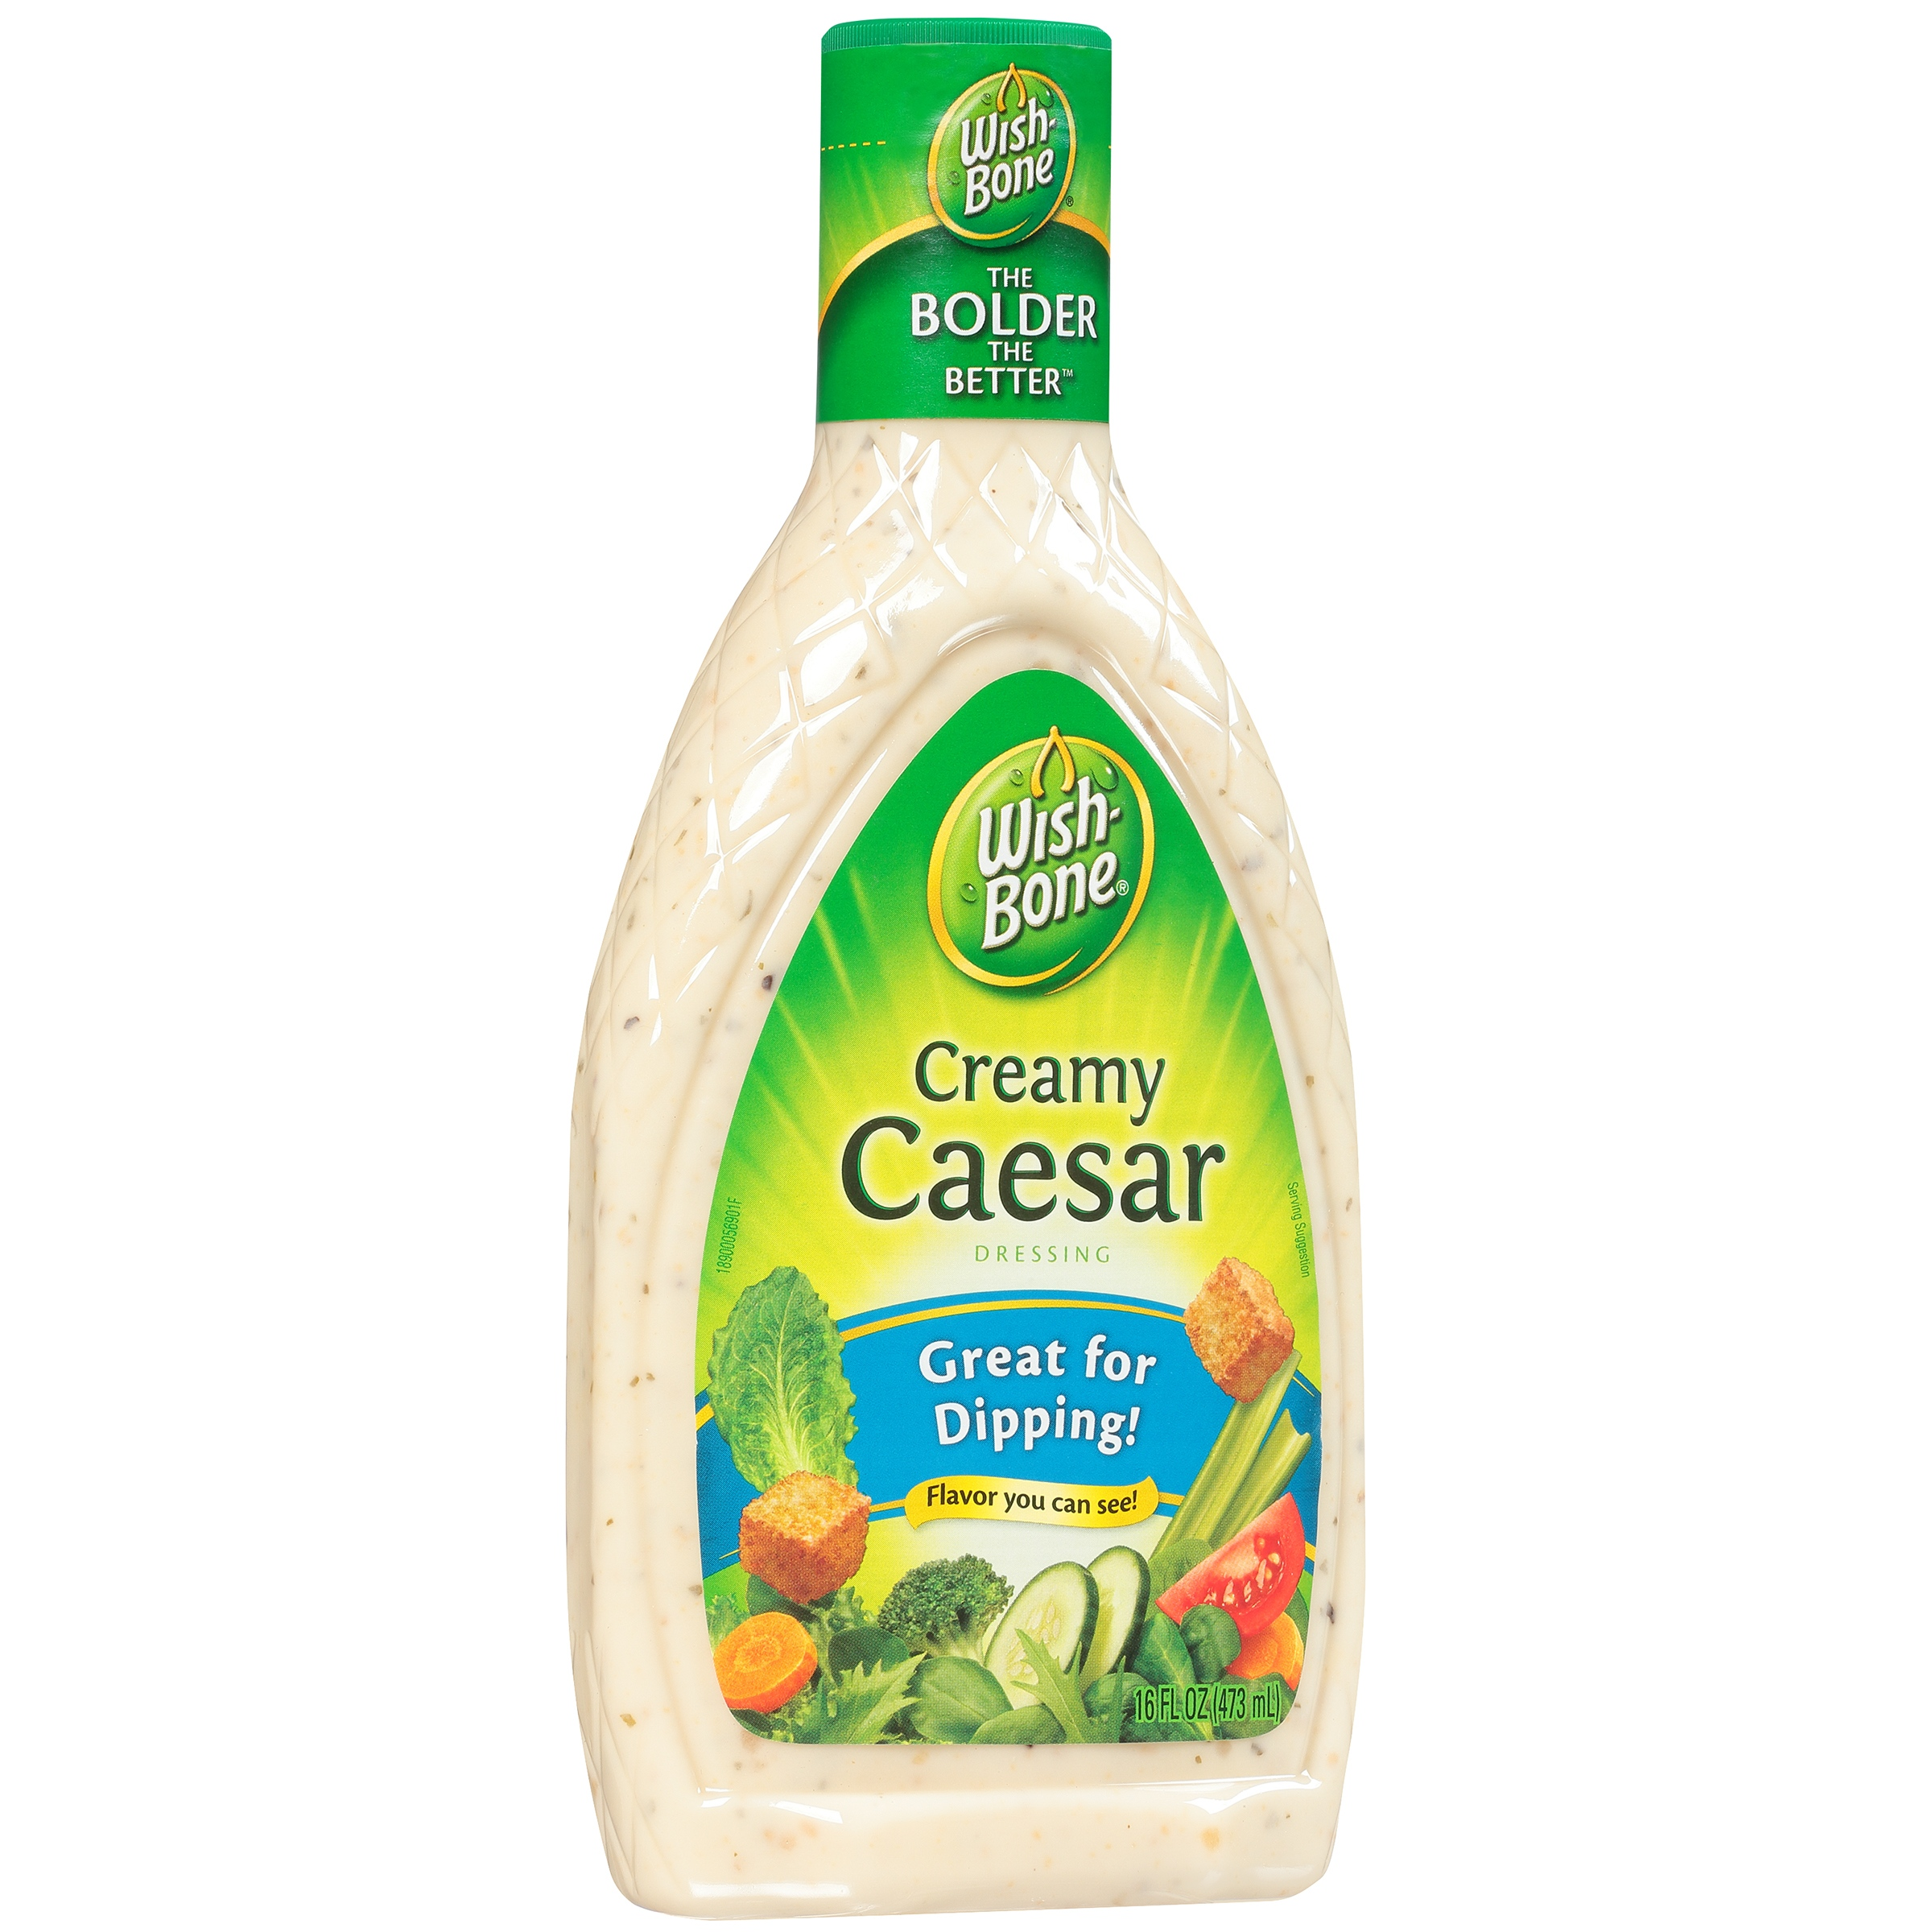 Wish-Bone Creamy Caesar Dressing 16 fl. oz. Plastic Bottle